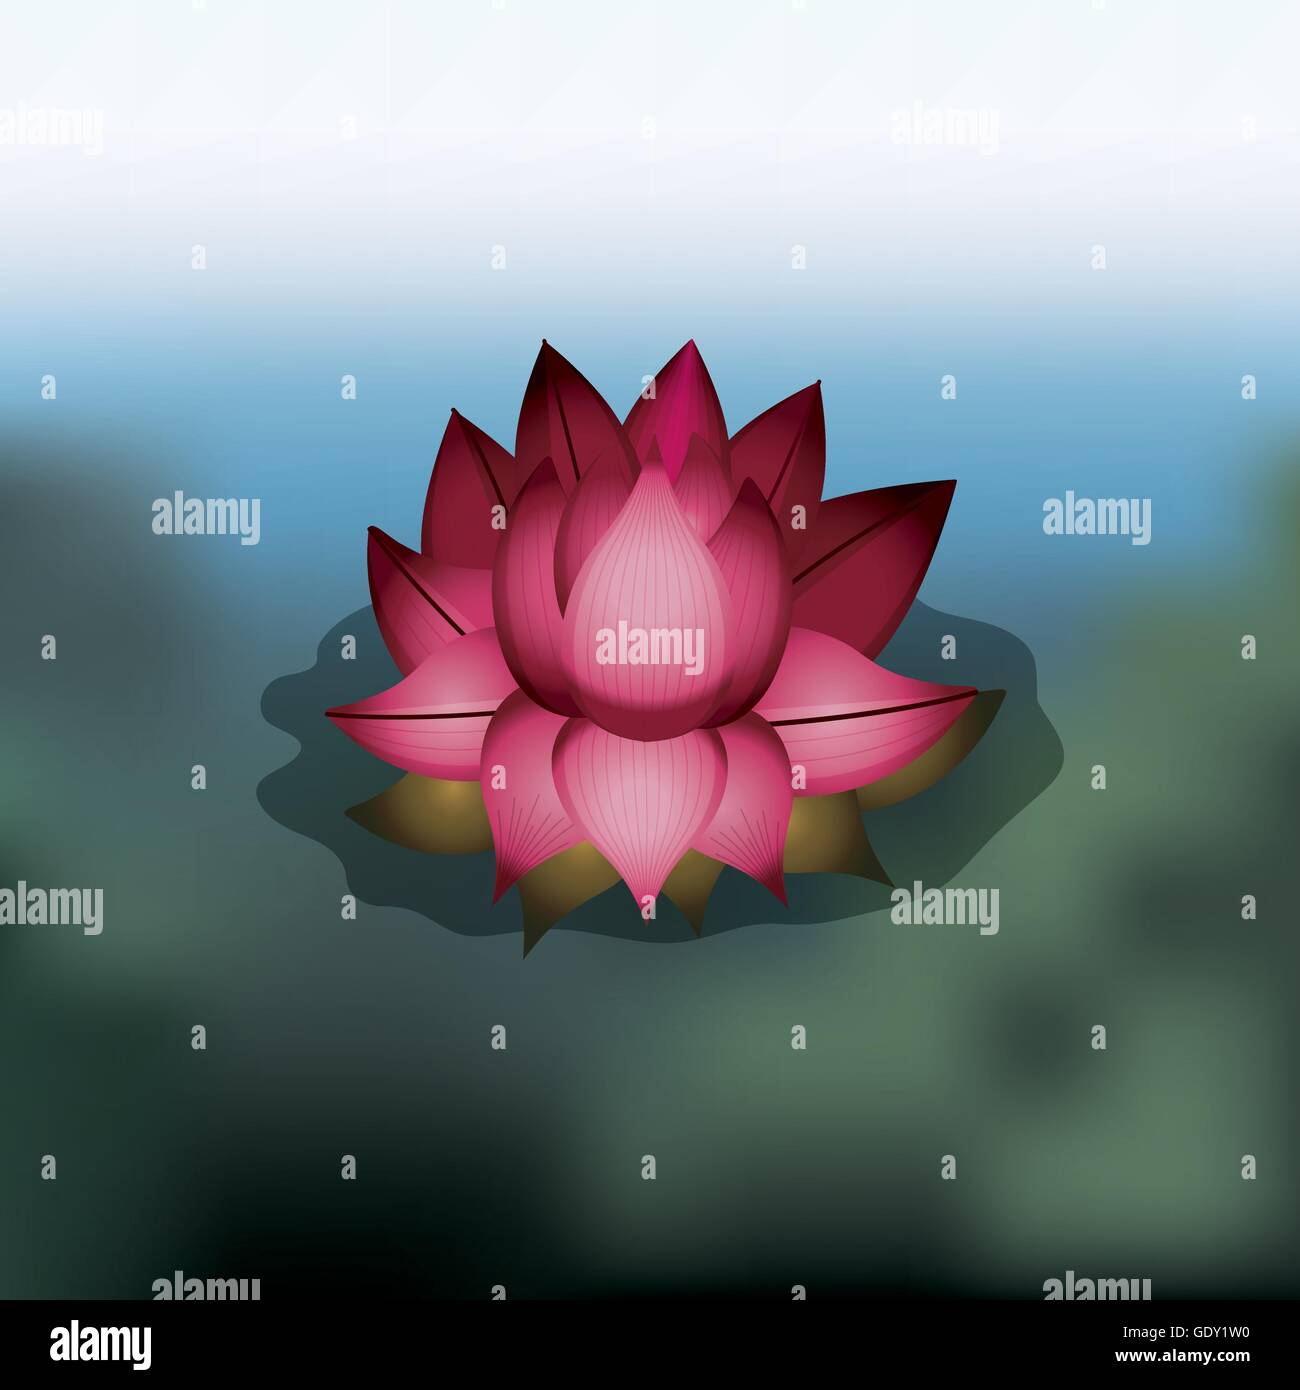 Lotus Flower Over Blur Background Isolated Icon Design Stock Vector